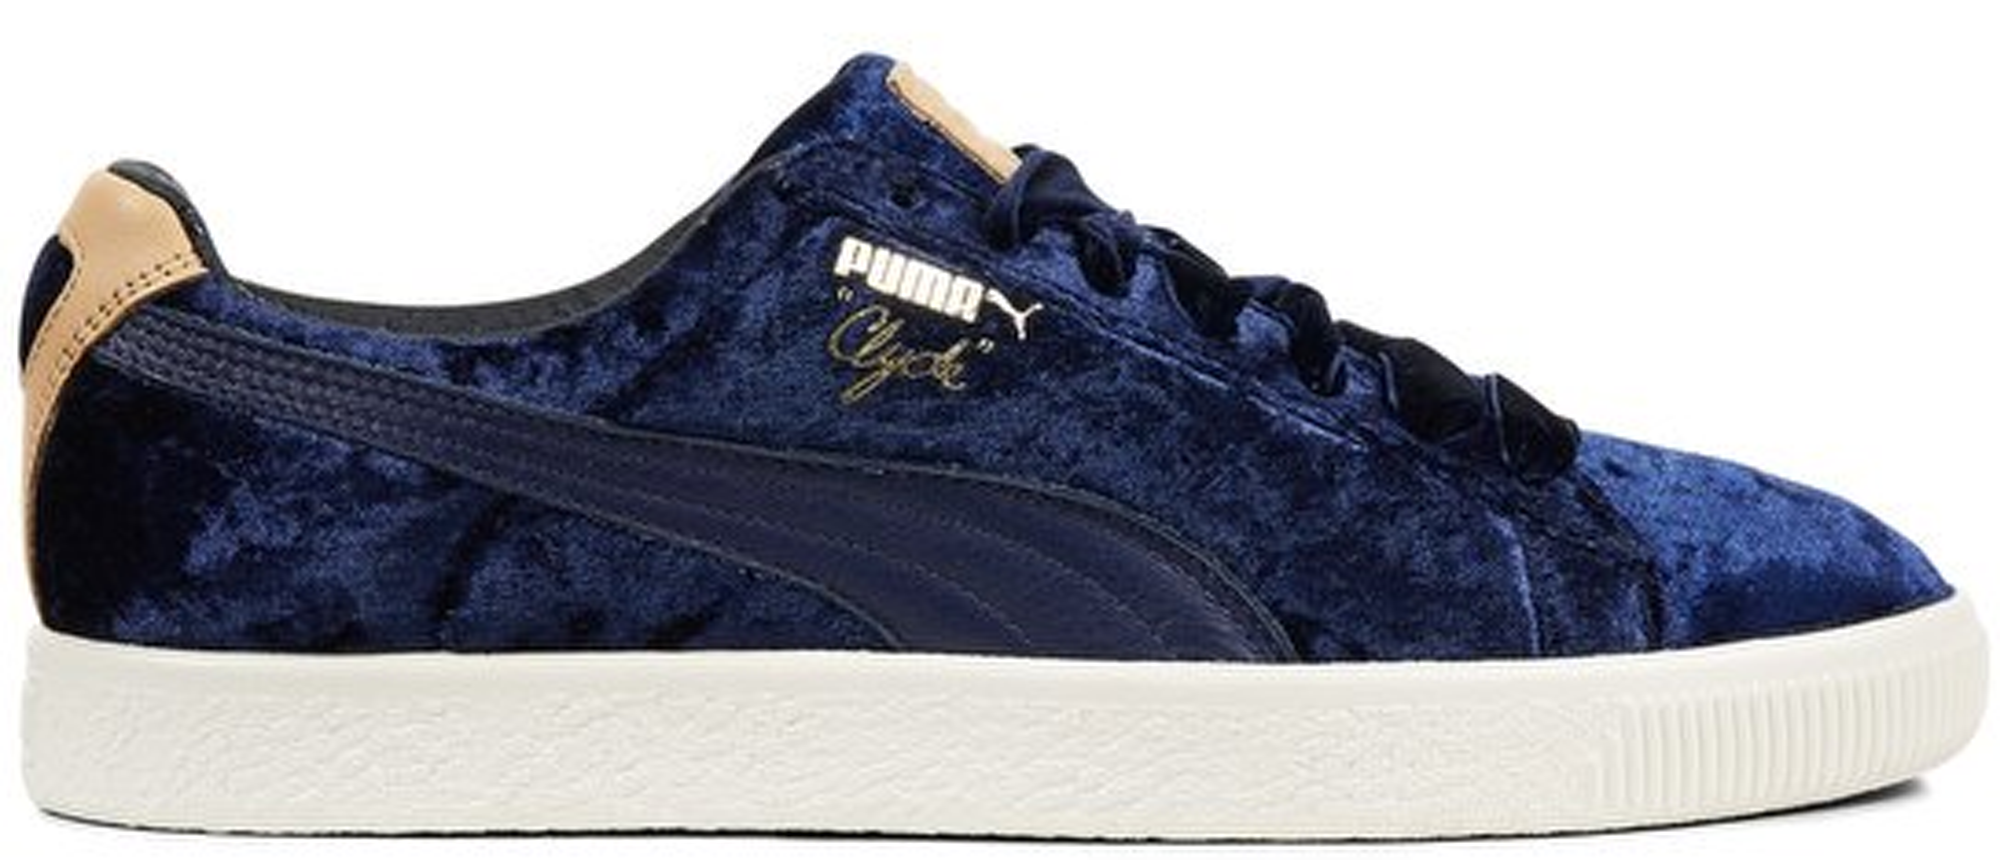 Puma Clyde Extra Butter Kings Of New York Peacoat